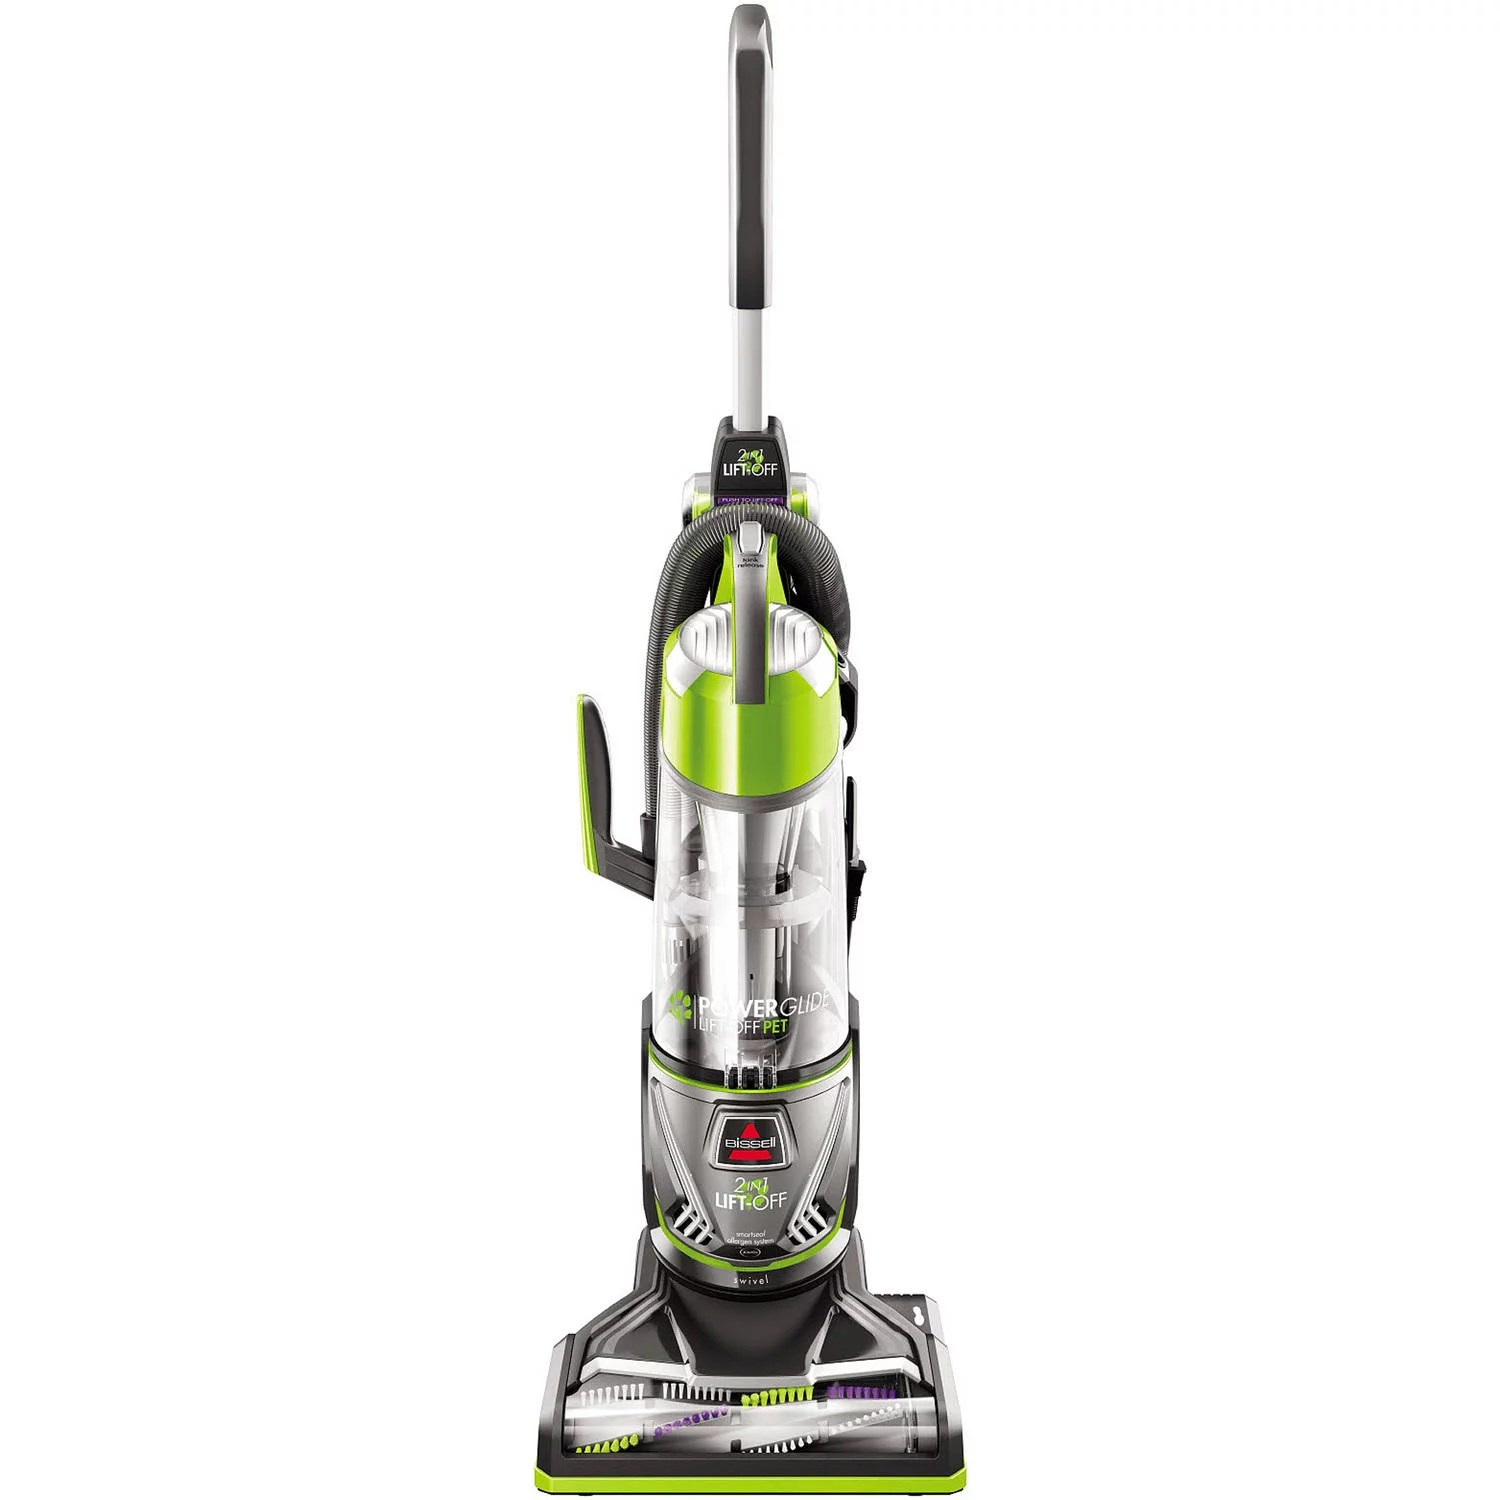 hight resolution of bissell powerglide lift off pet upright vacuum cleaner 2043w walmart com